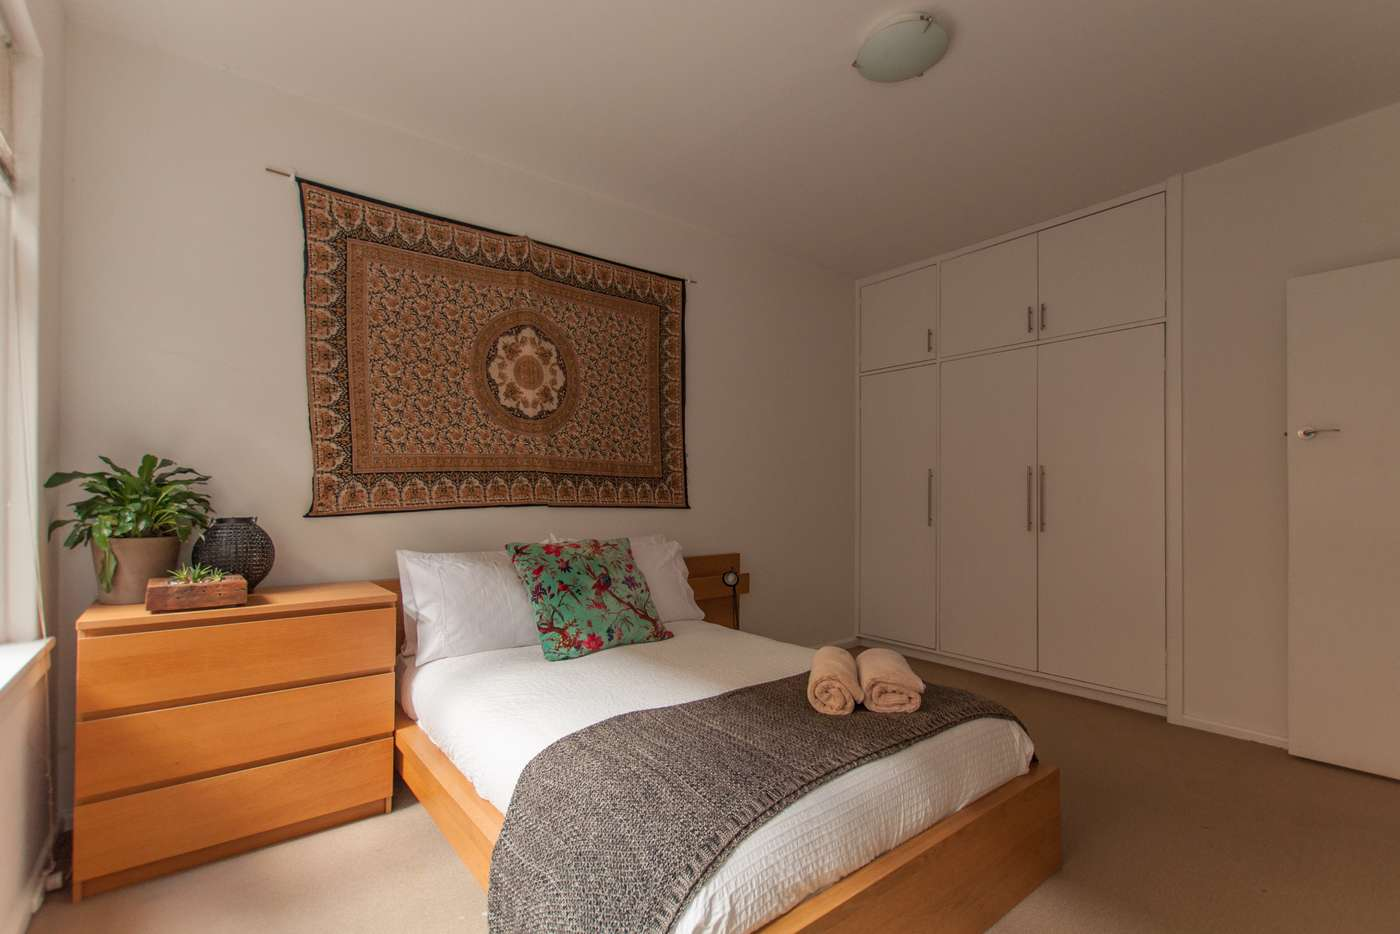 Seventh view of Homely apartment listing, 8/10 Williams Road, Windsor VIC 3181